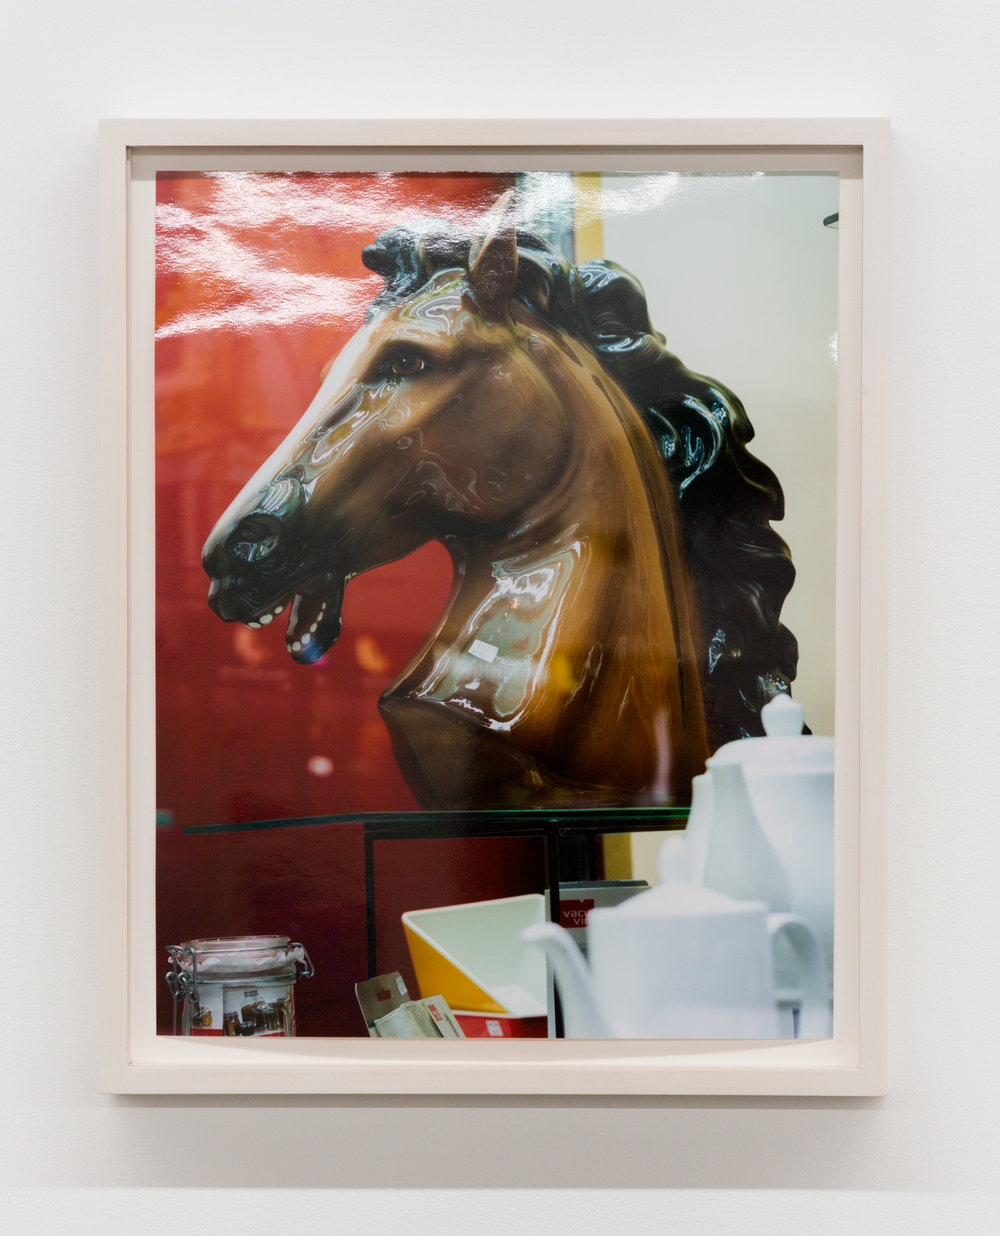 Untitled (Horse Head), Hong Kong , 2016, Chromira print on Glossy Fujicolor Crystal Archive Paper, Unframed: 14 x 11 inches, Framed: 15 7/8 x 12 5/8 x 1 3/8 inches